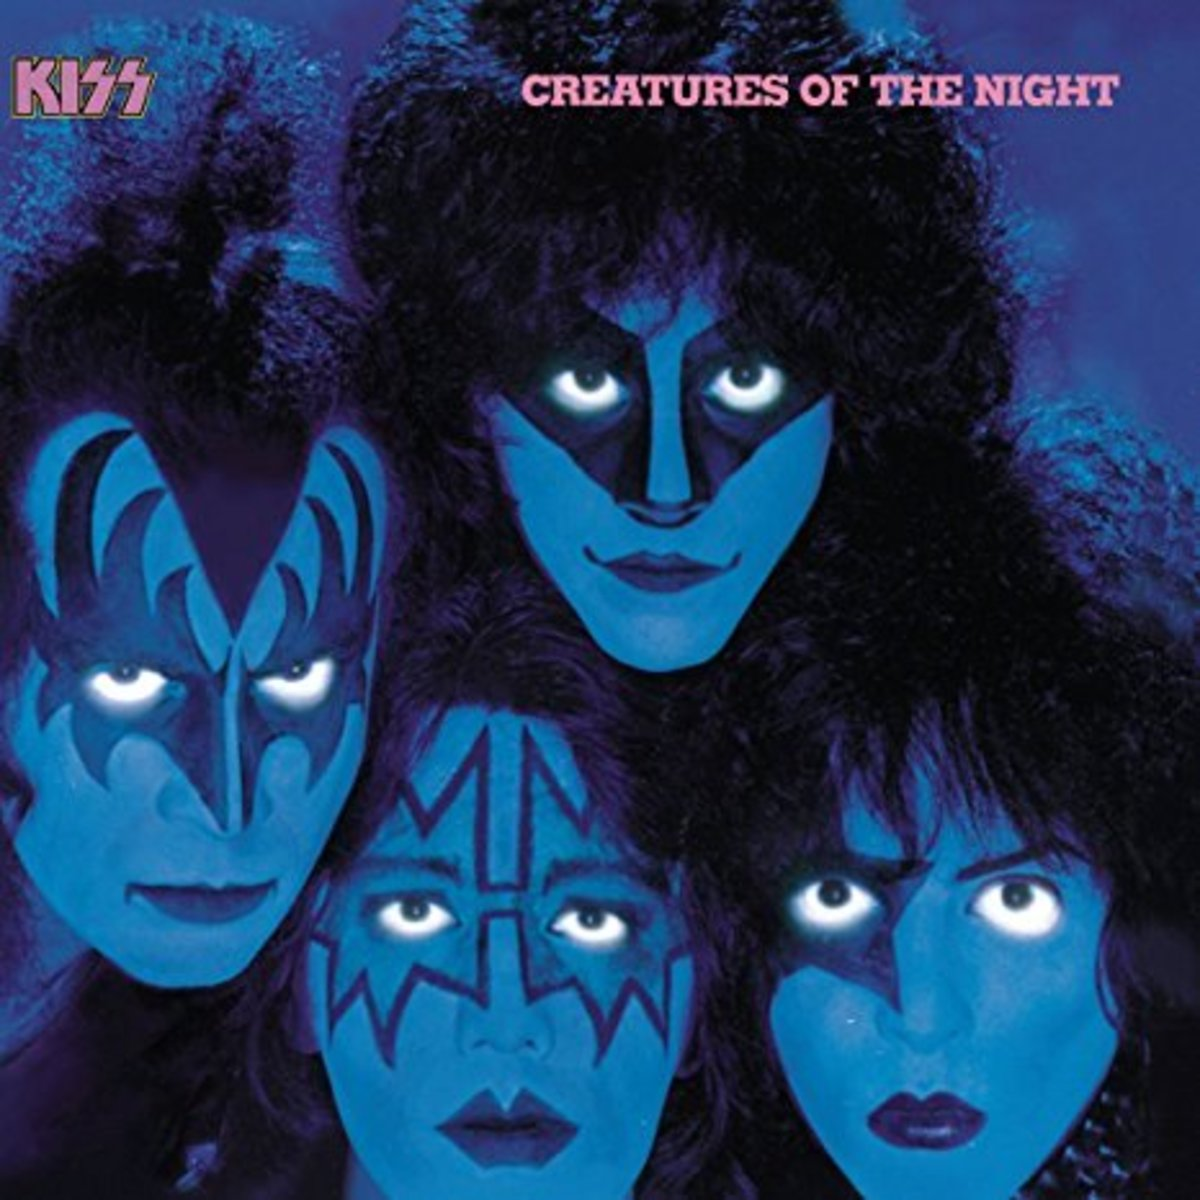 retro-metal-review-kiss-creatures-of-the-night-casablanca-1982